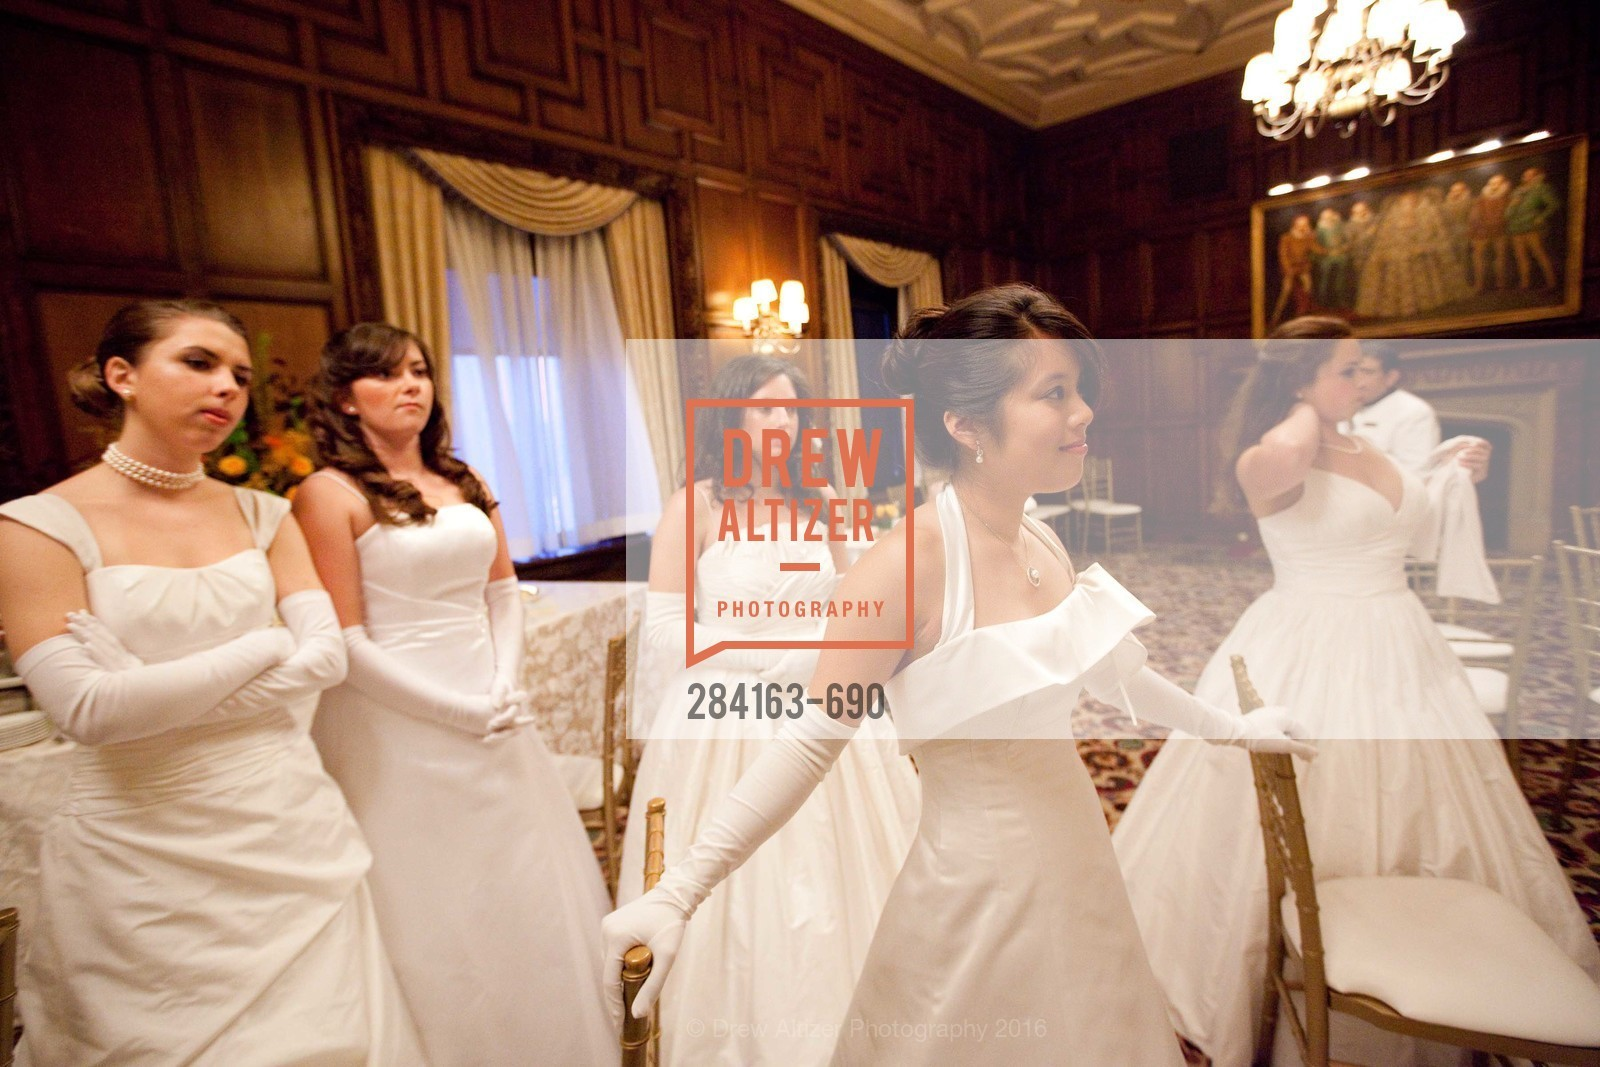 Victoria Hetz, Greer Rosenbaum, Marissa Seto, Taylor Roy, 2009 Debutante Ball, Unknown, July 4th, 2008,Drew Altizer, Drew Altizer Photography, full-service agency, private events, San Francisco photographer, photographer california